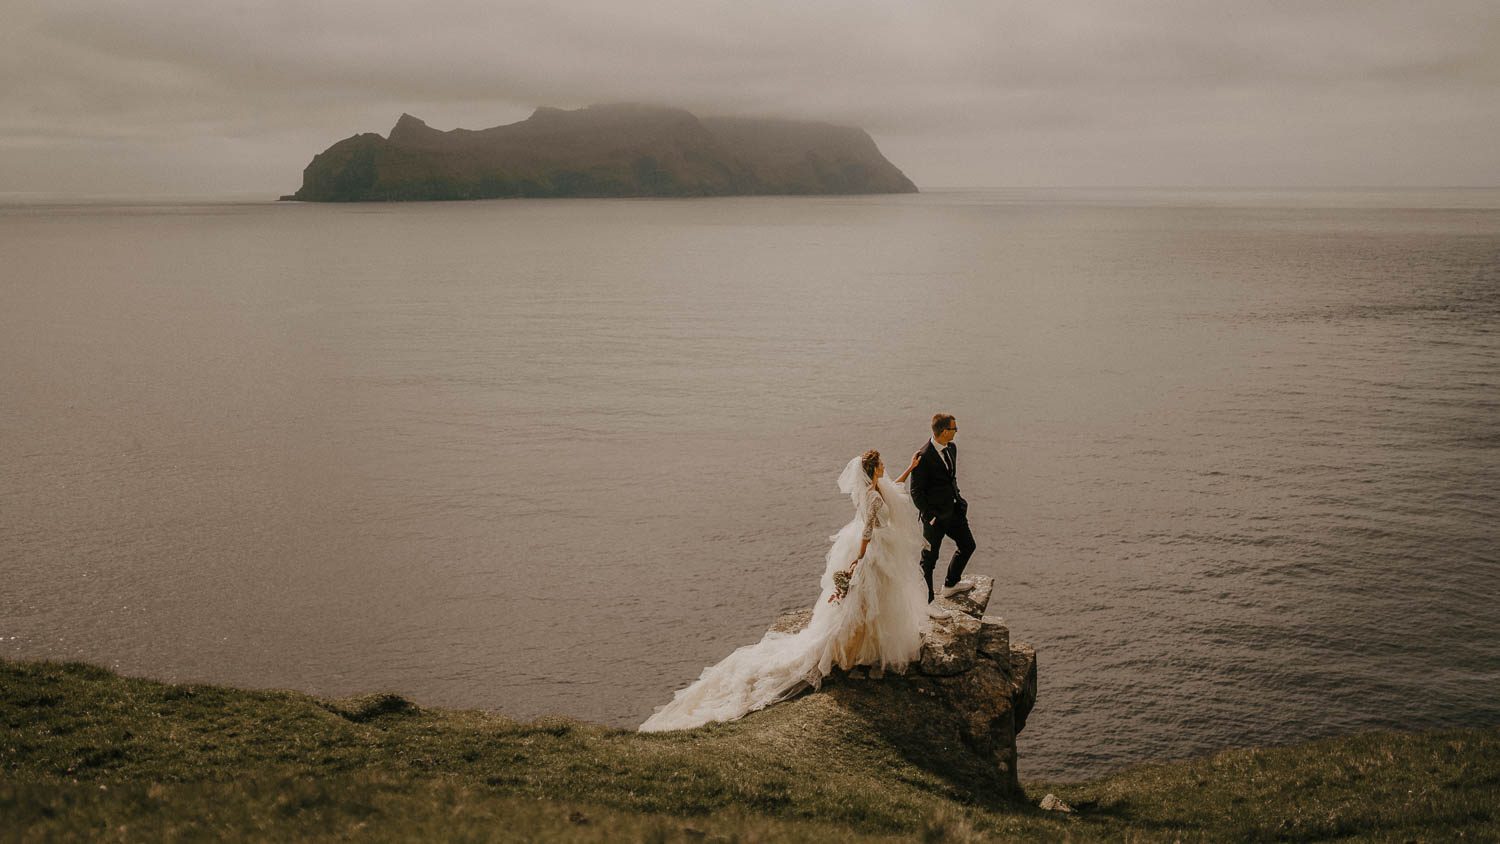 Faroe Islands adventurous elopement | Oleg Tru wedding photographer